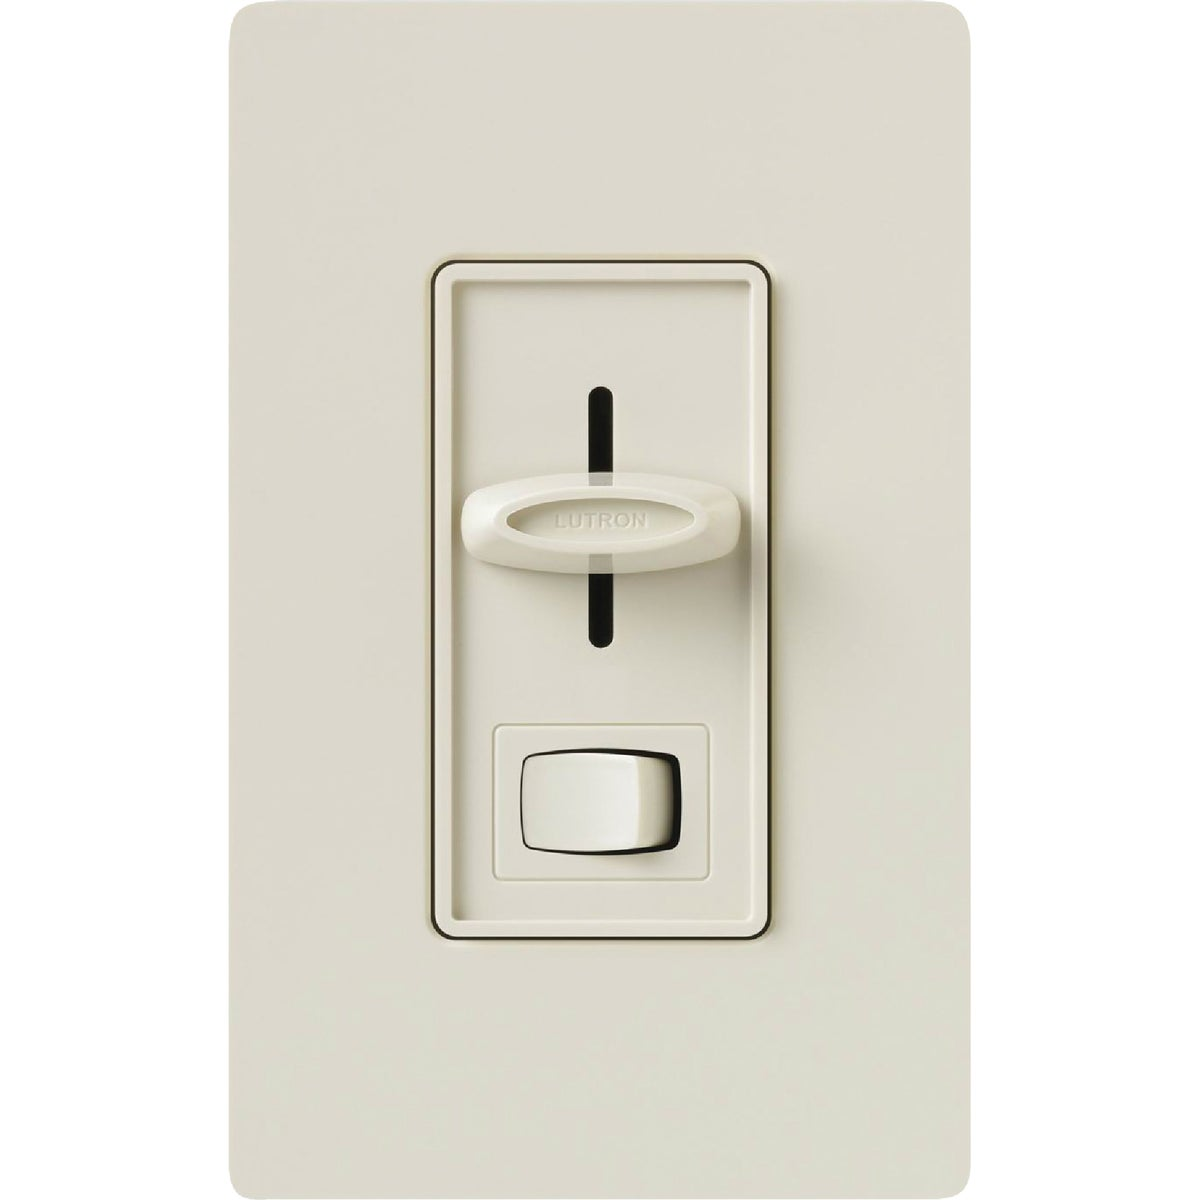 LT ALM 3WAY SLIDE DIMMER - S-603PH-LA by Lutron Elect Co Inc